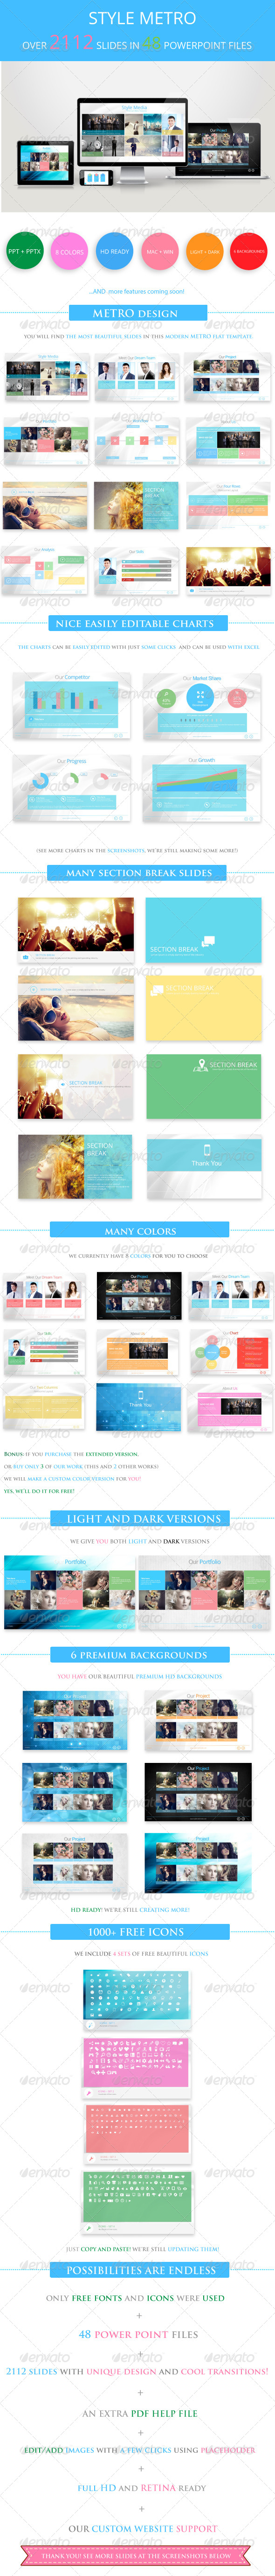 GraphicRiver Style Metro Powerpoint Template 5484618